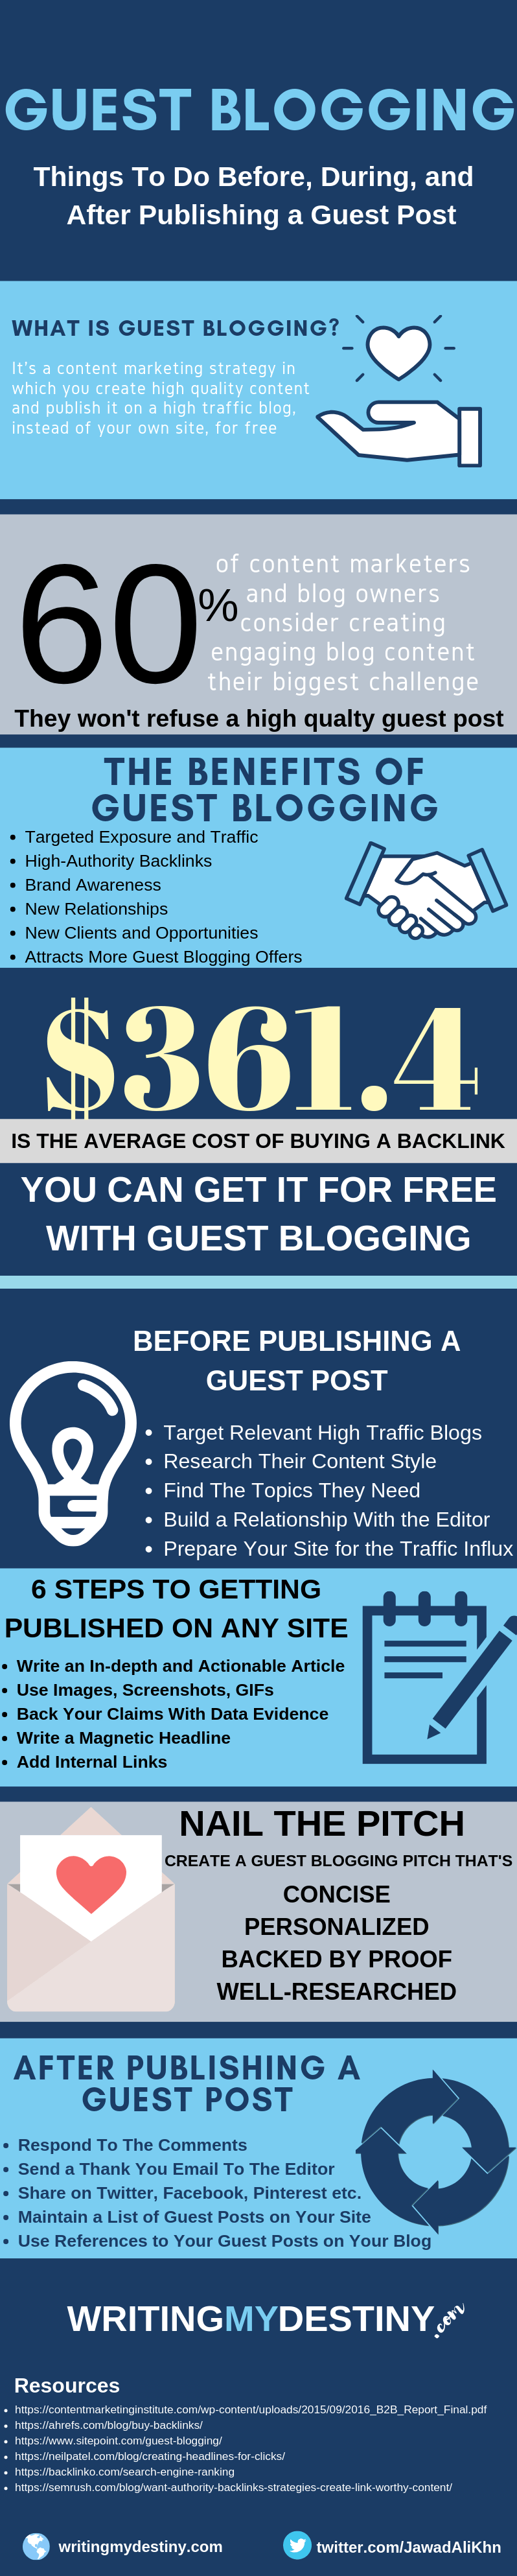 Guest Blogging in 2019 - The Definitive Guide for